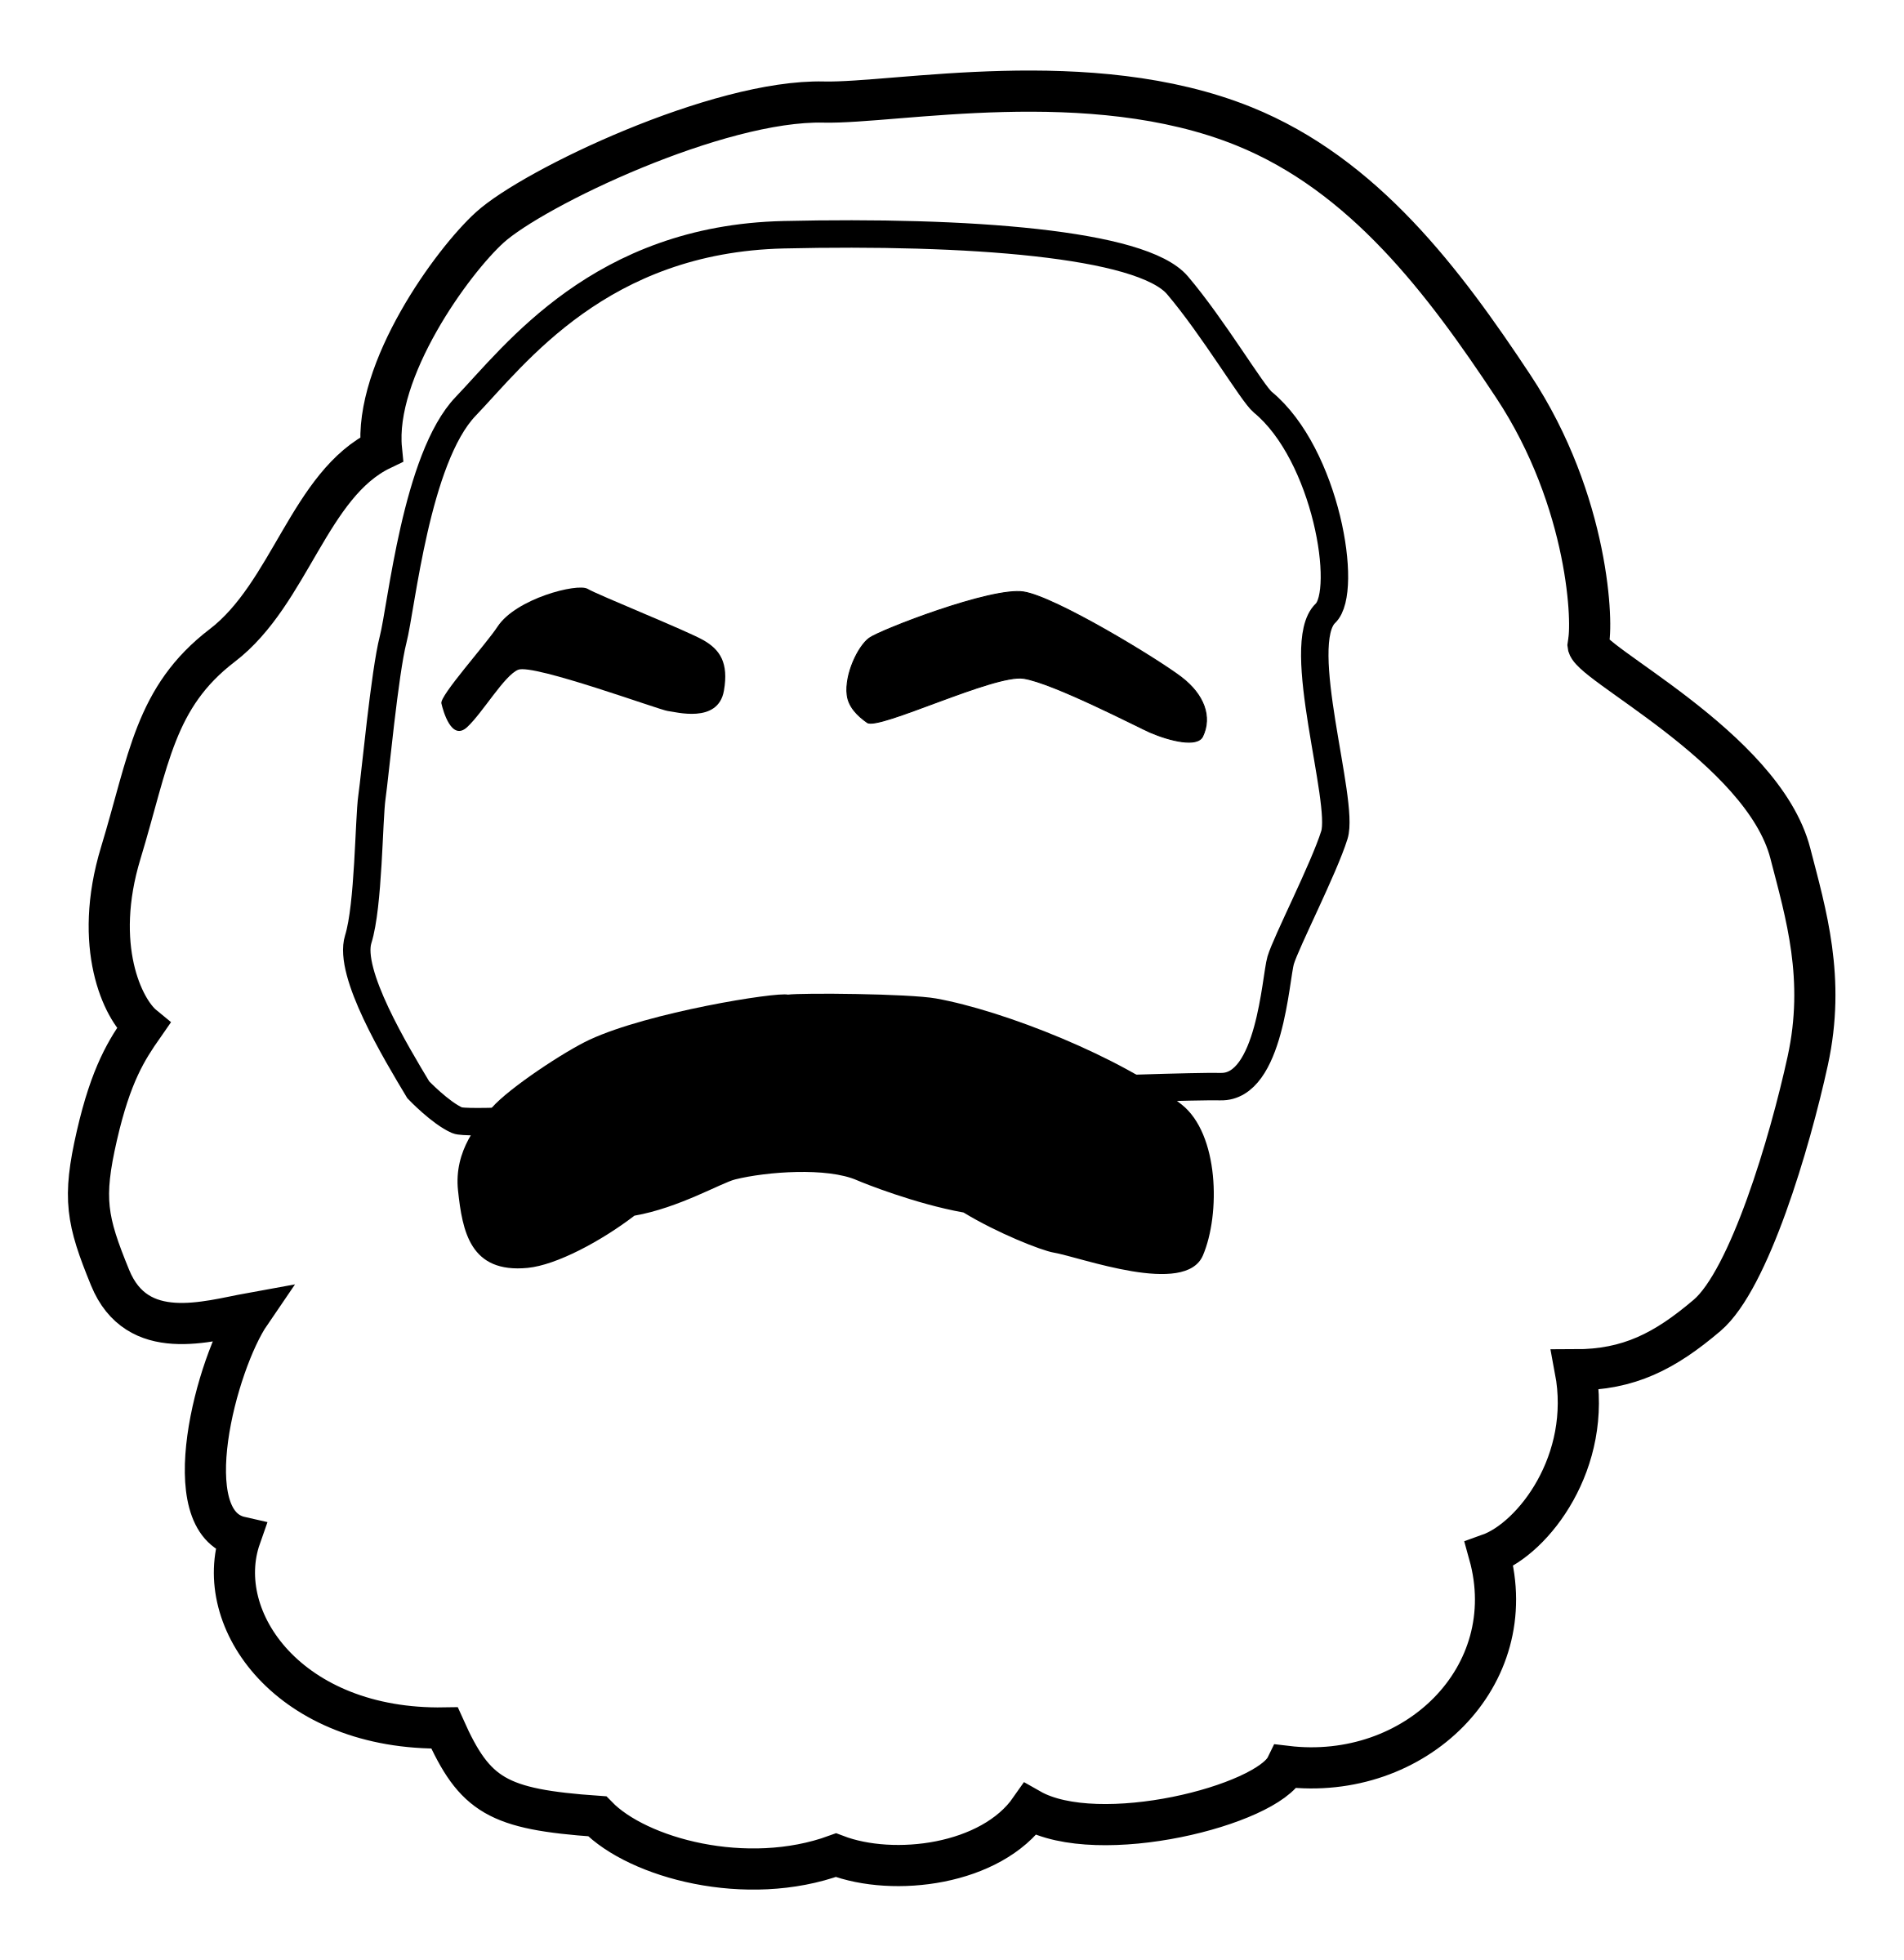 Karl Marx Head (Icon)  - 200 years by worker